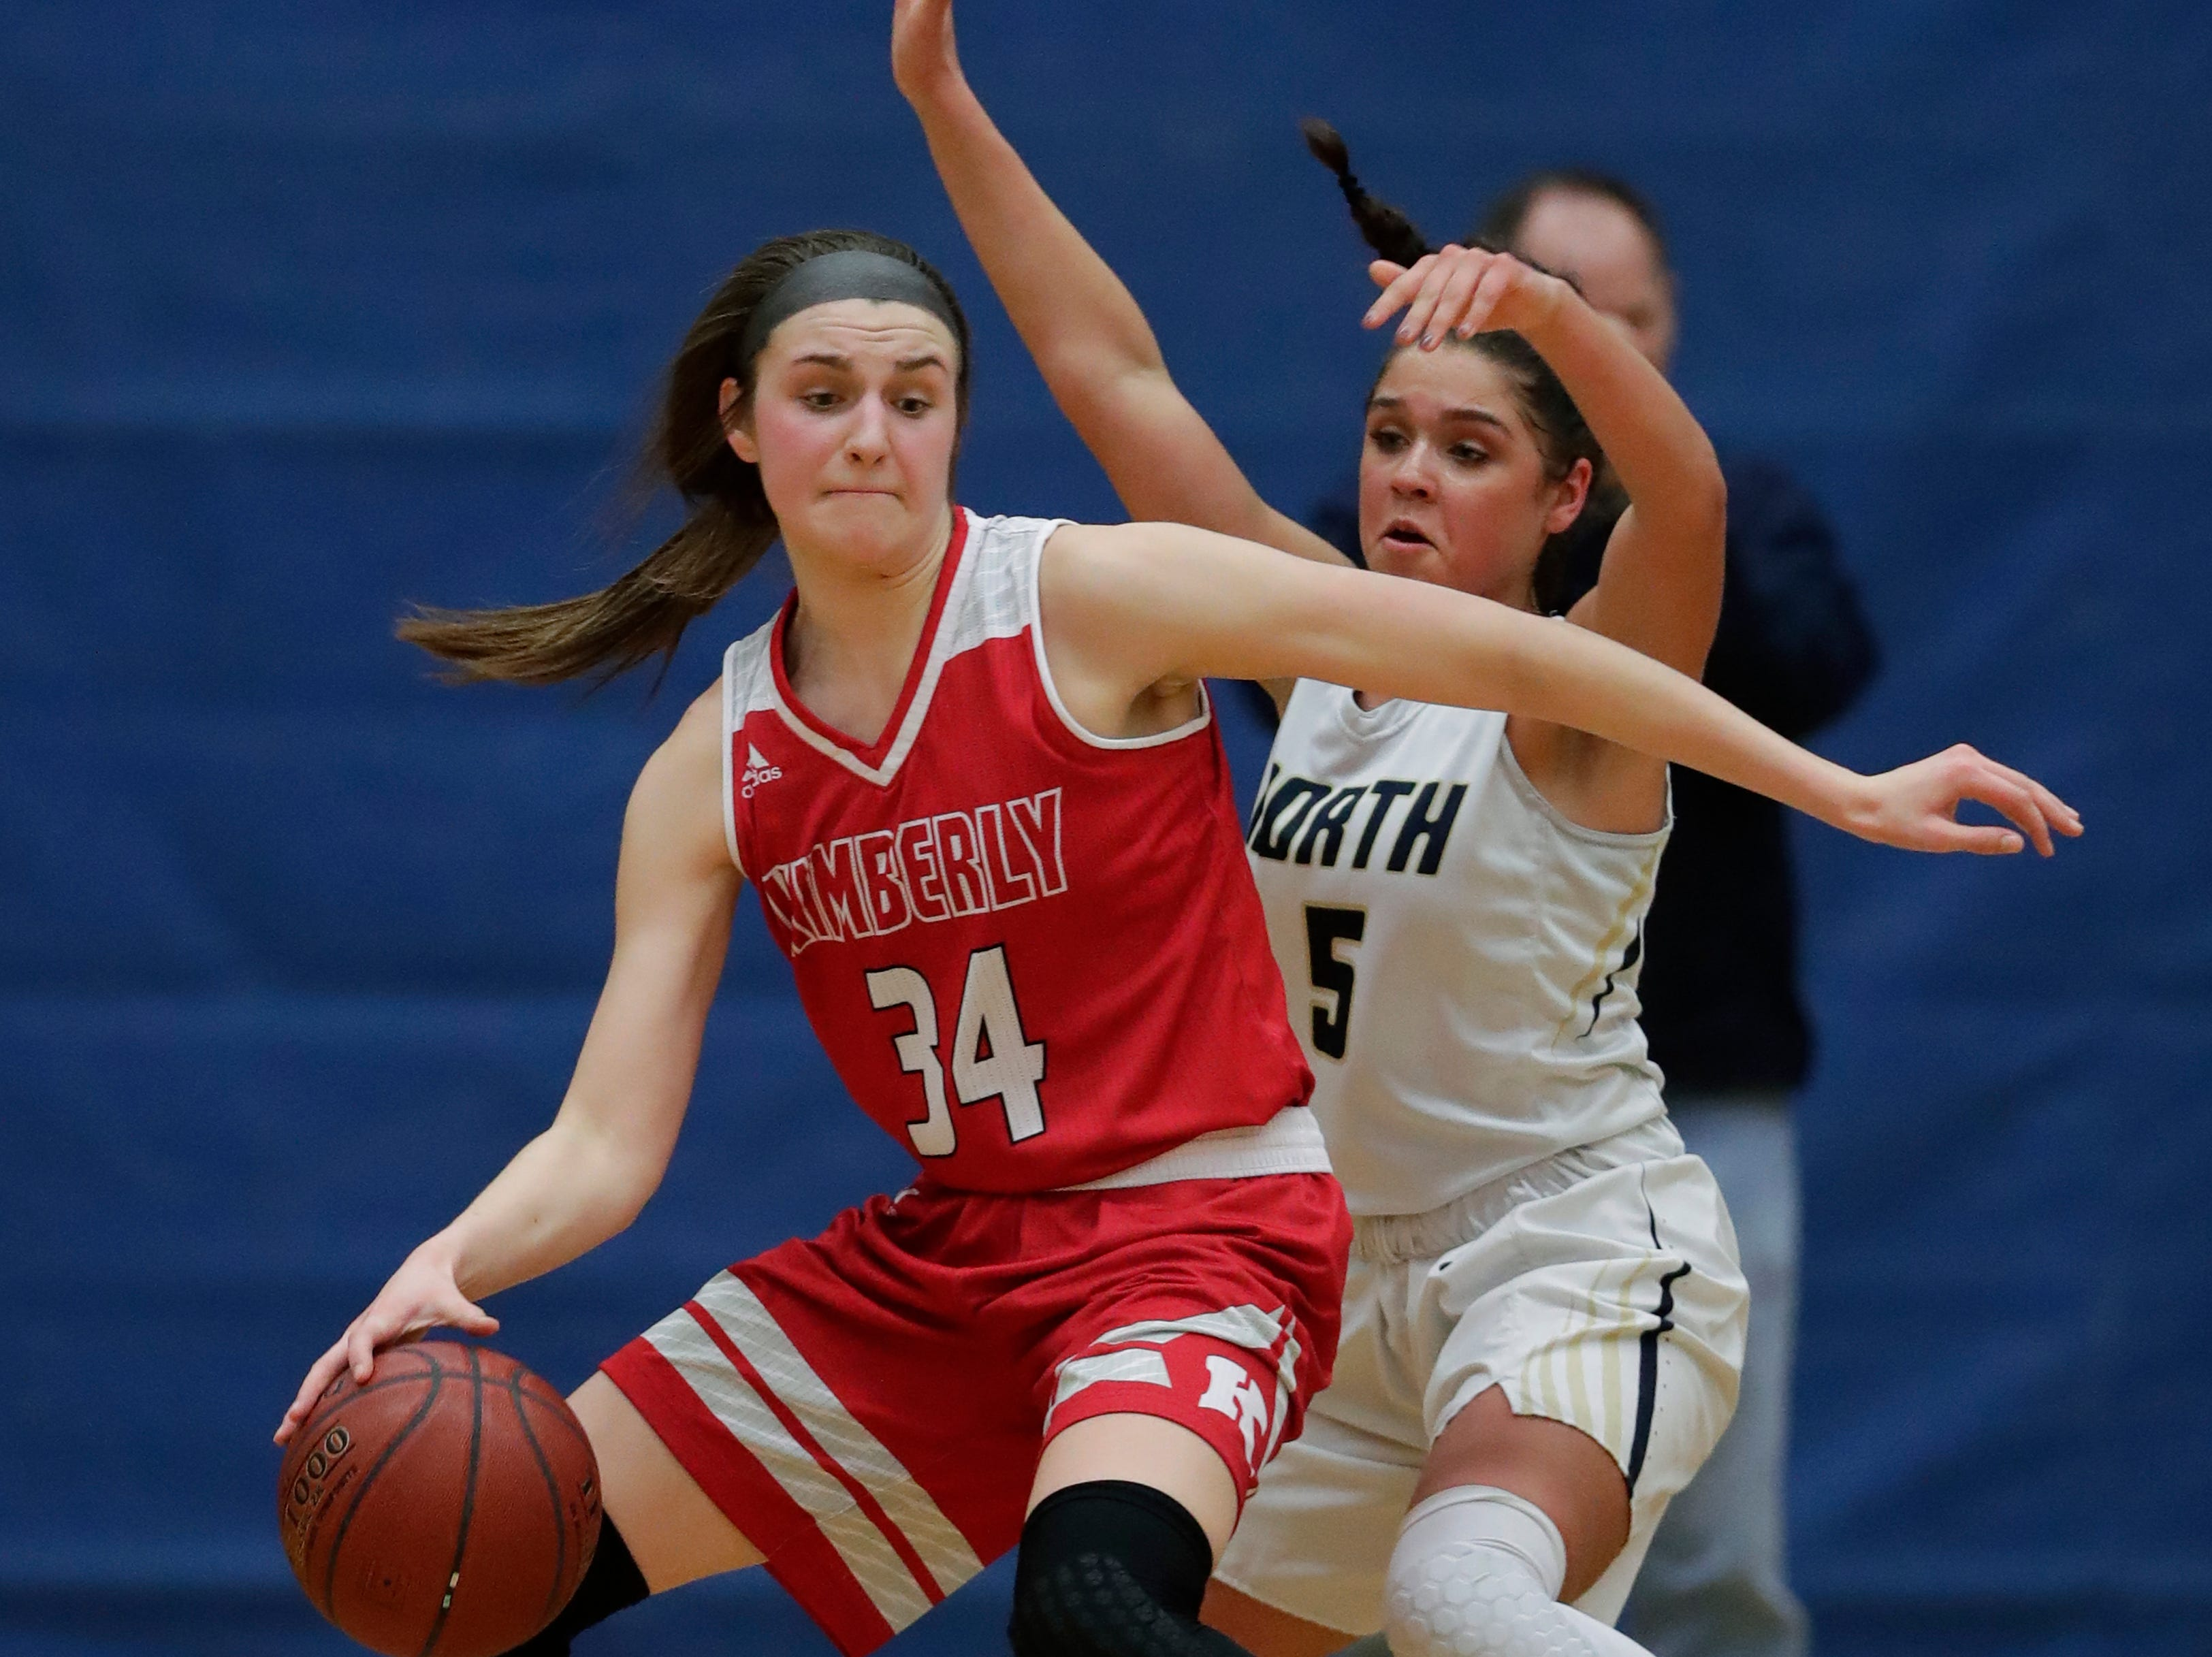 Appleton North High School's Niki Van Wyk (5) defends against Kimberly High School's Maddy Schreiber (34) during their girls basketball game Tuesday, January 8, 2019, in Appleton, Wis. 